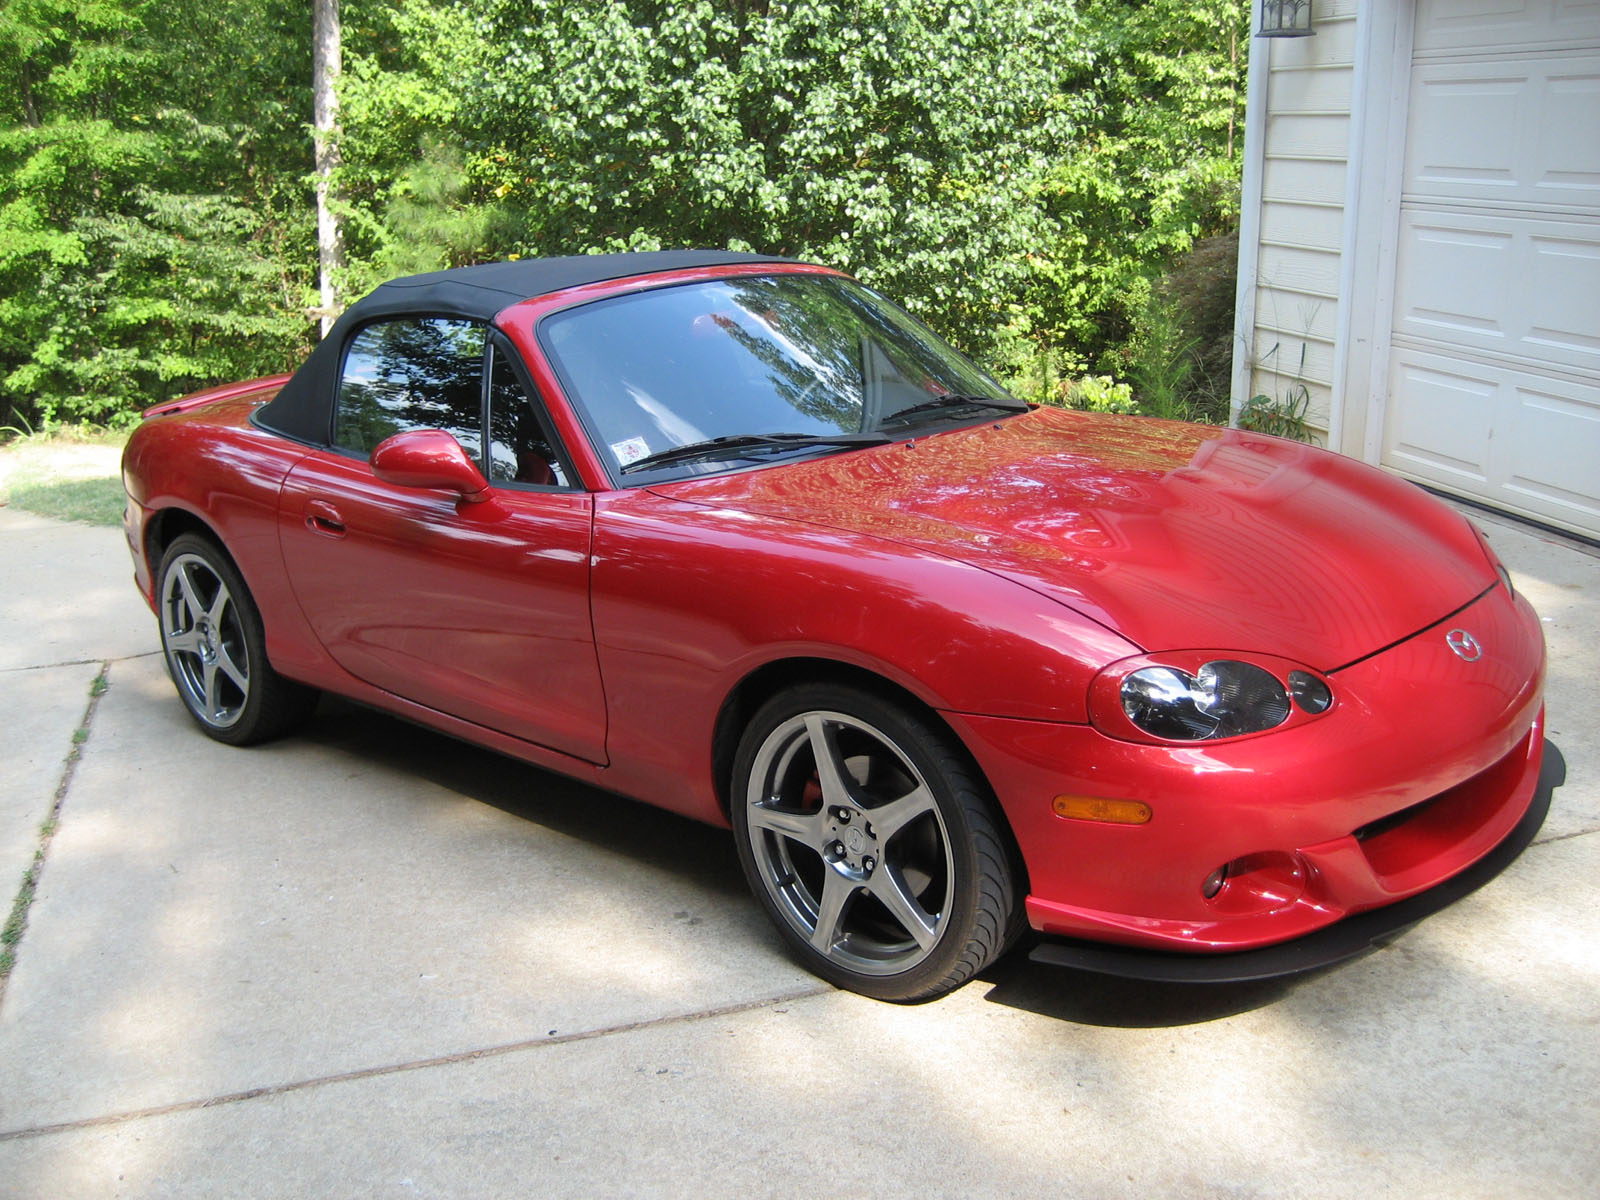 2004 mazda miata mx5 mazdaspeed 1 4 mile trap speeds 0 60. Black Bedroom Furniture Sets. Home Design Ideas